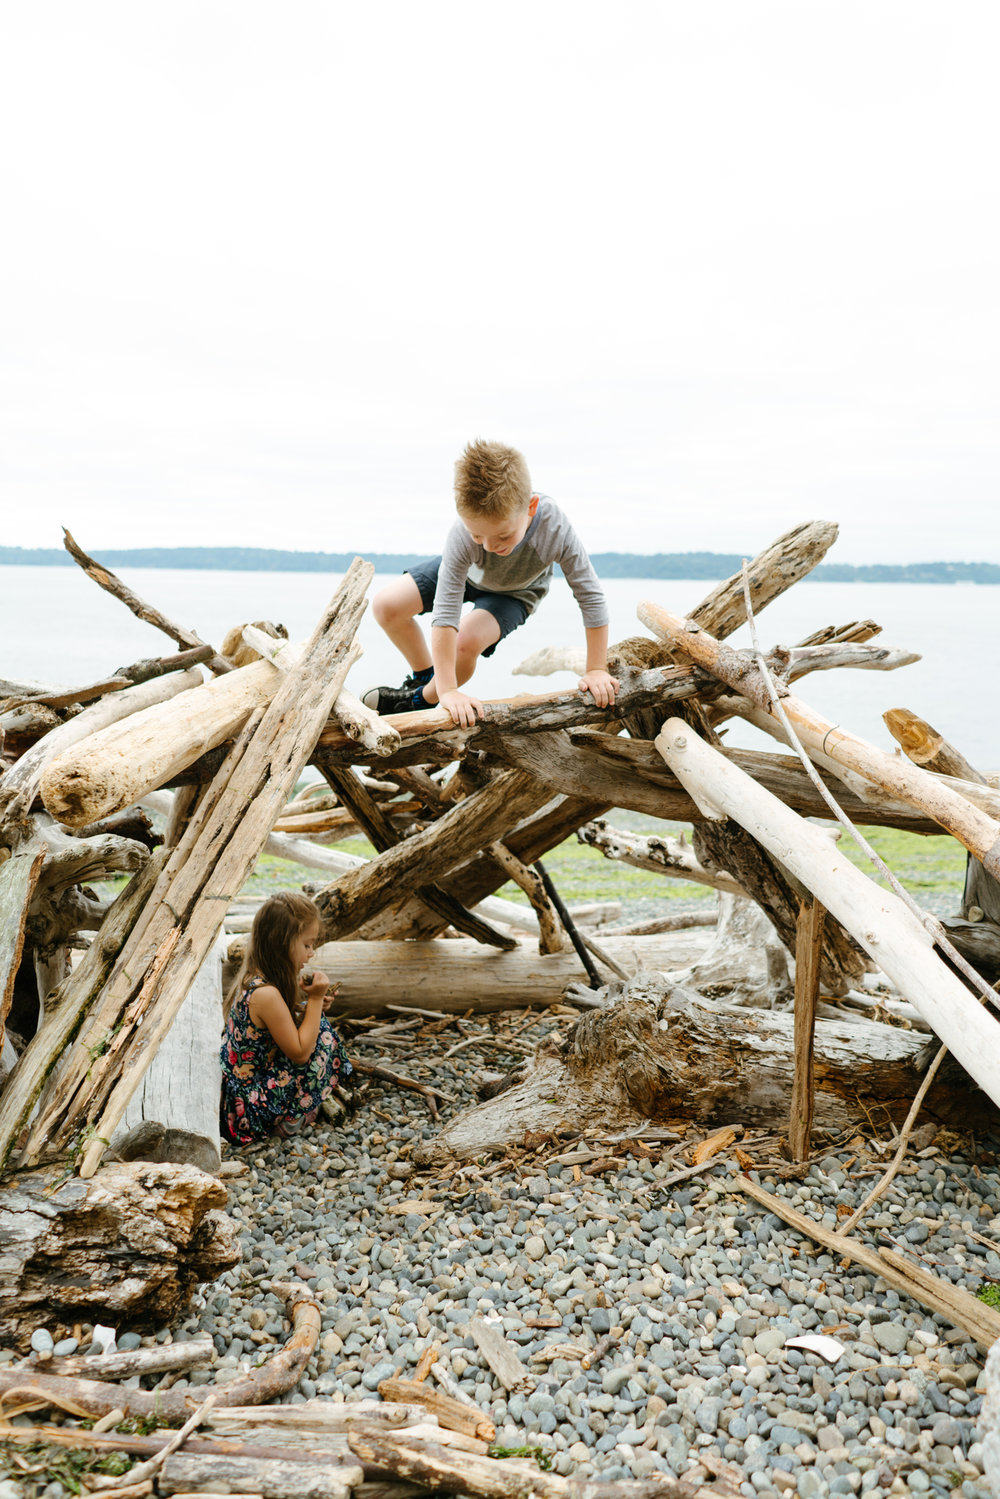 Children's Portrait Photography on the Beach of Puget Sound